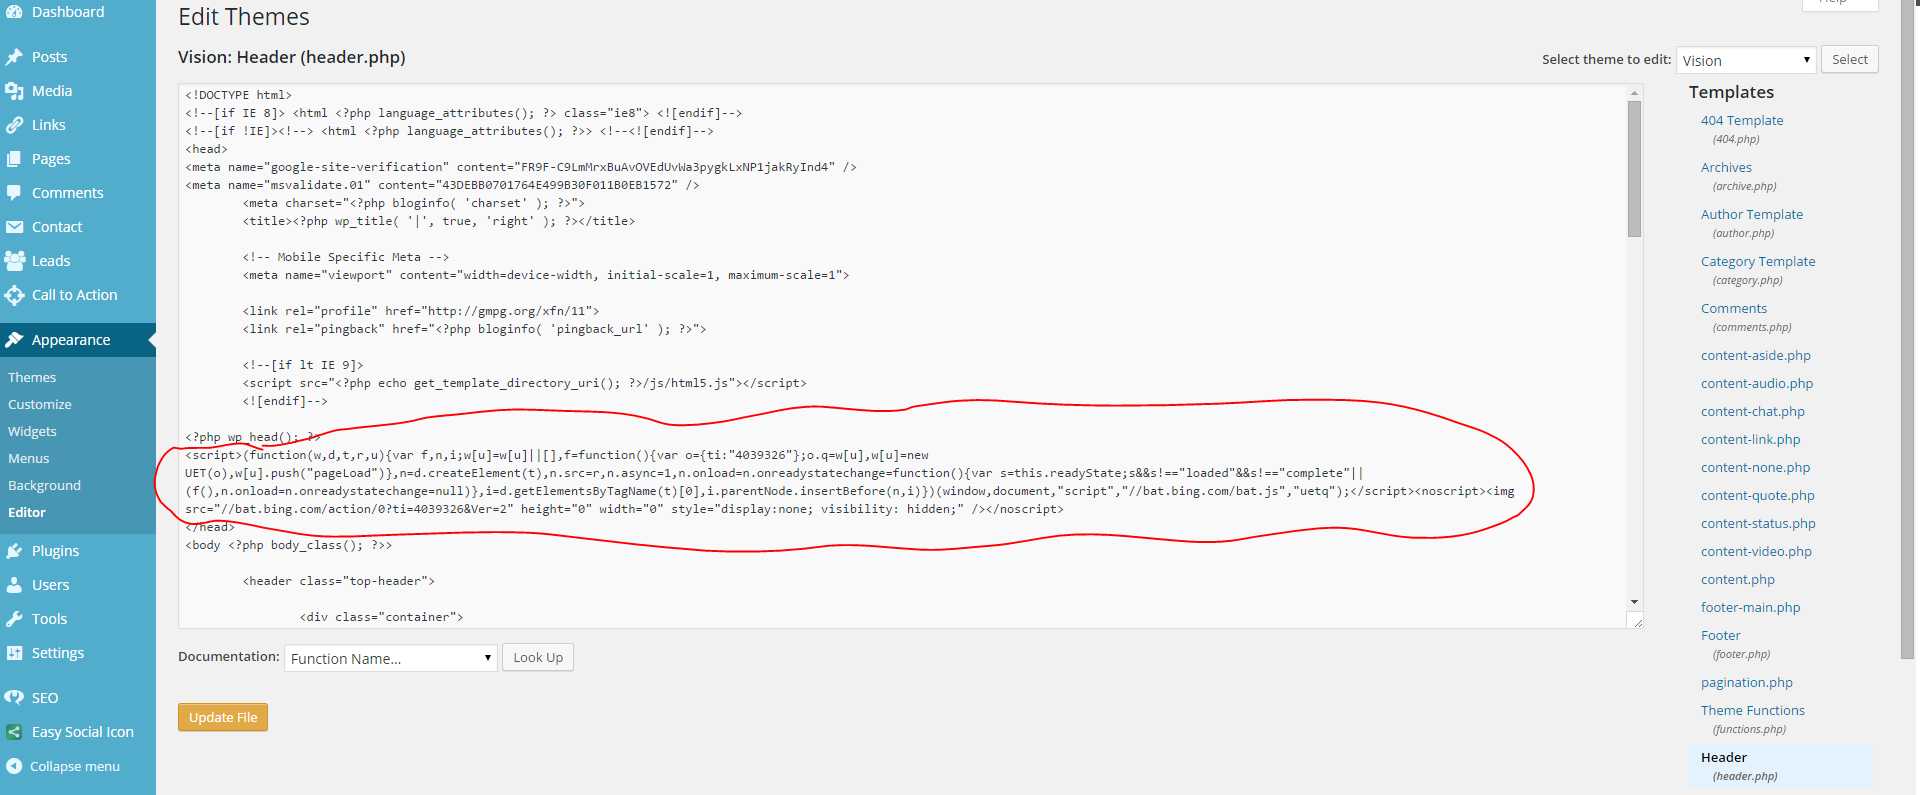 Bing Ads Code added to the header file